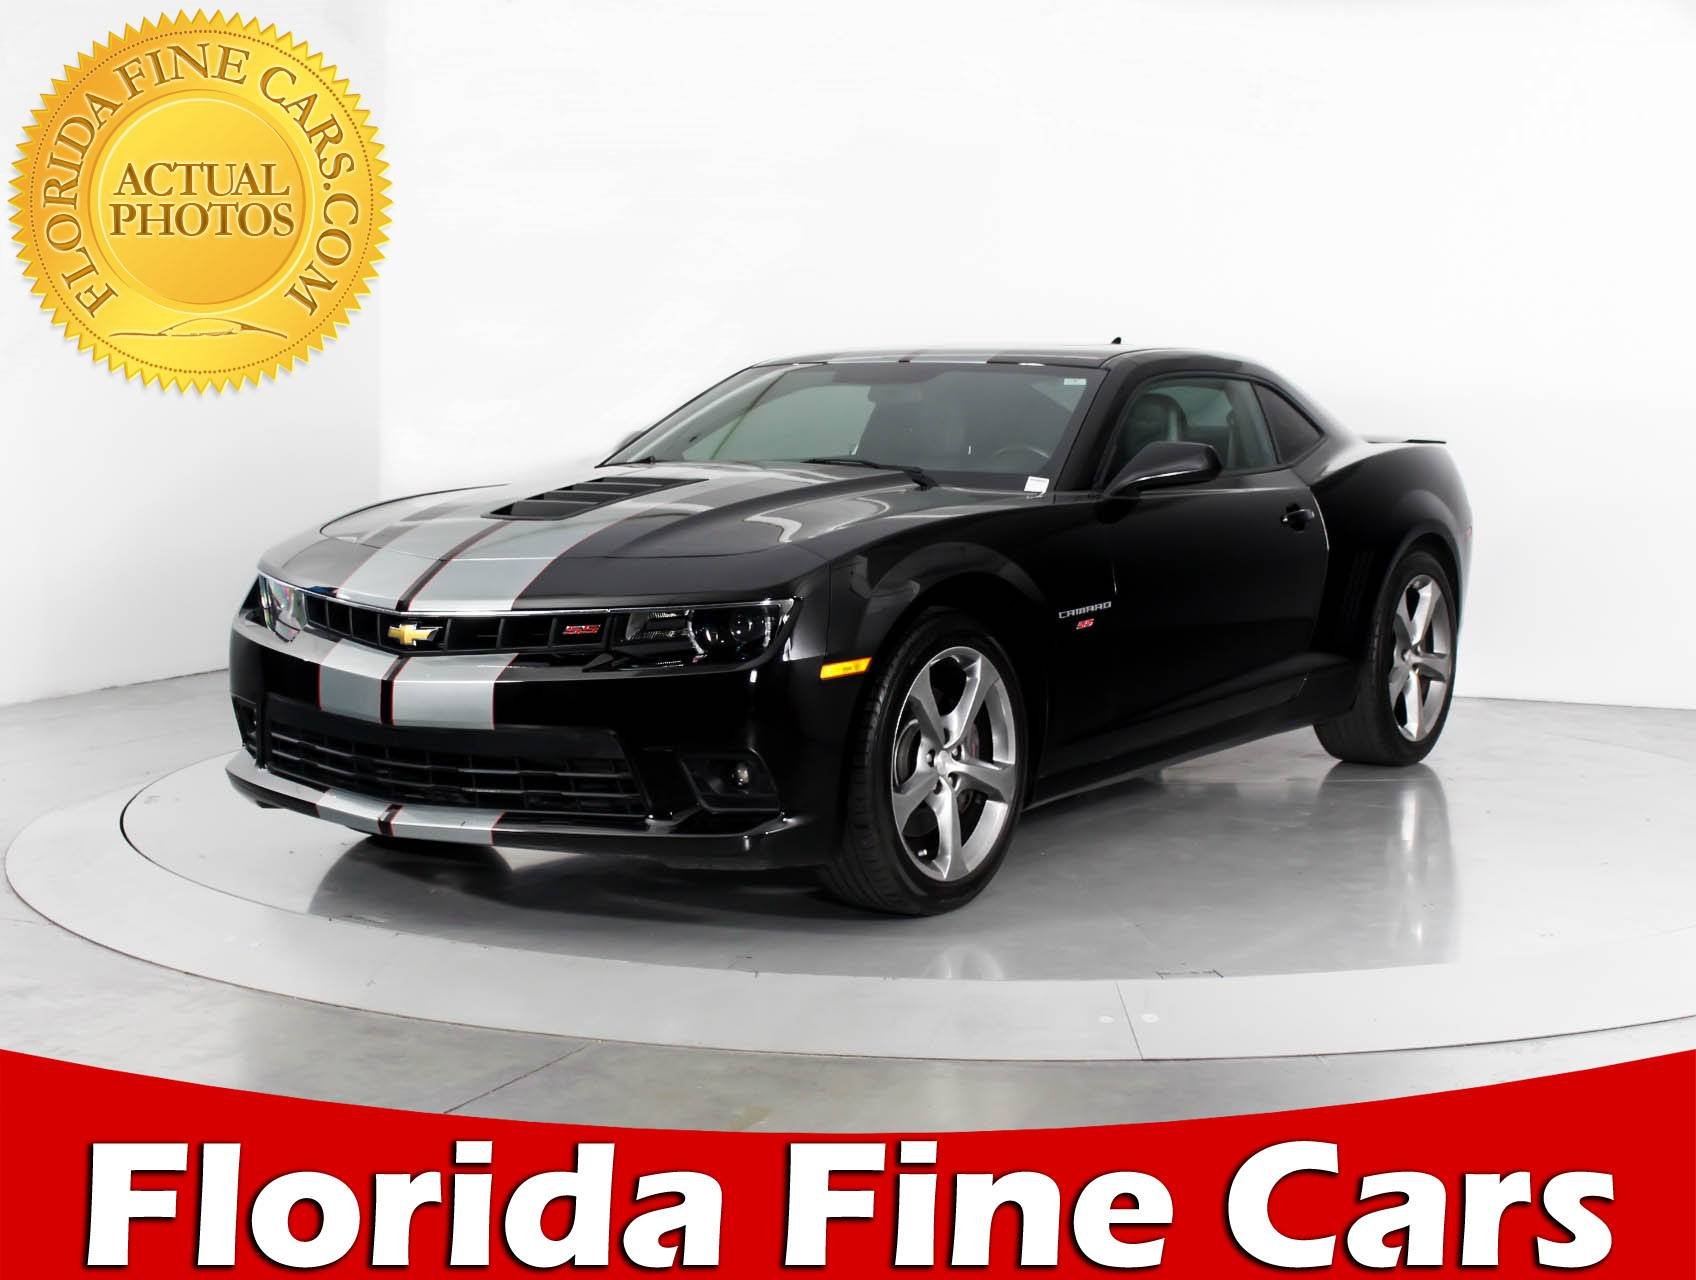 Used 2014 CHEVROLET CAMARO 2SS Coupe for sale in WEST PALM, FL ...